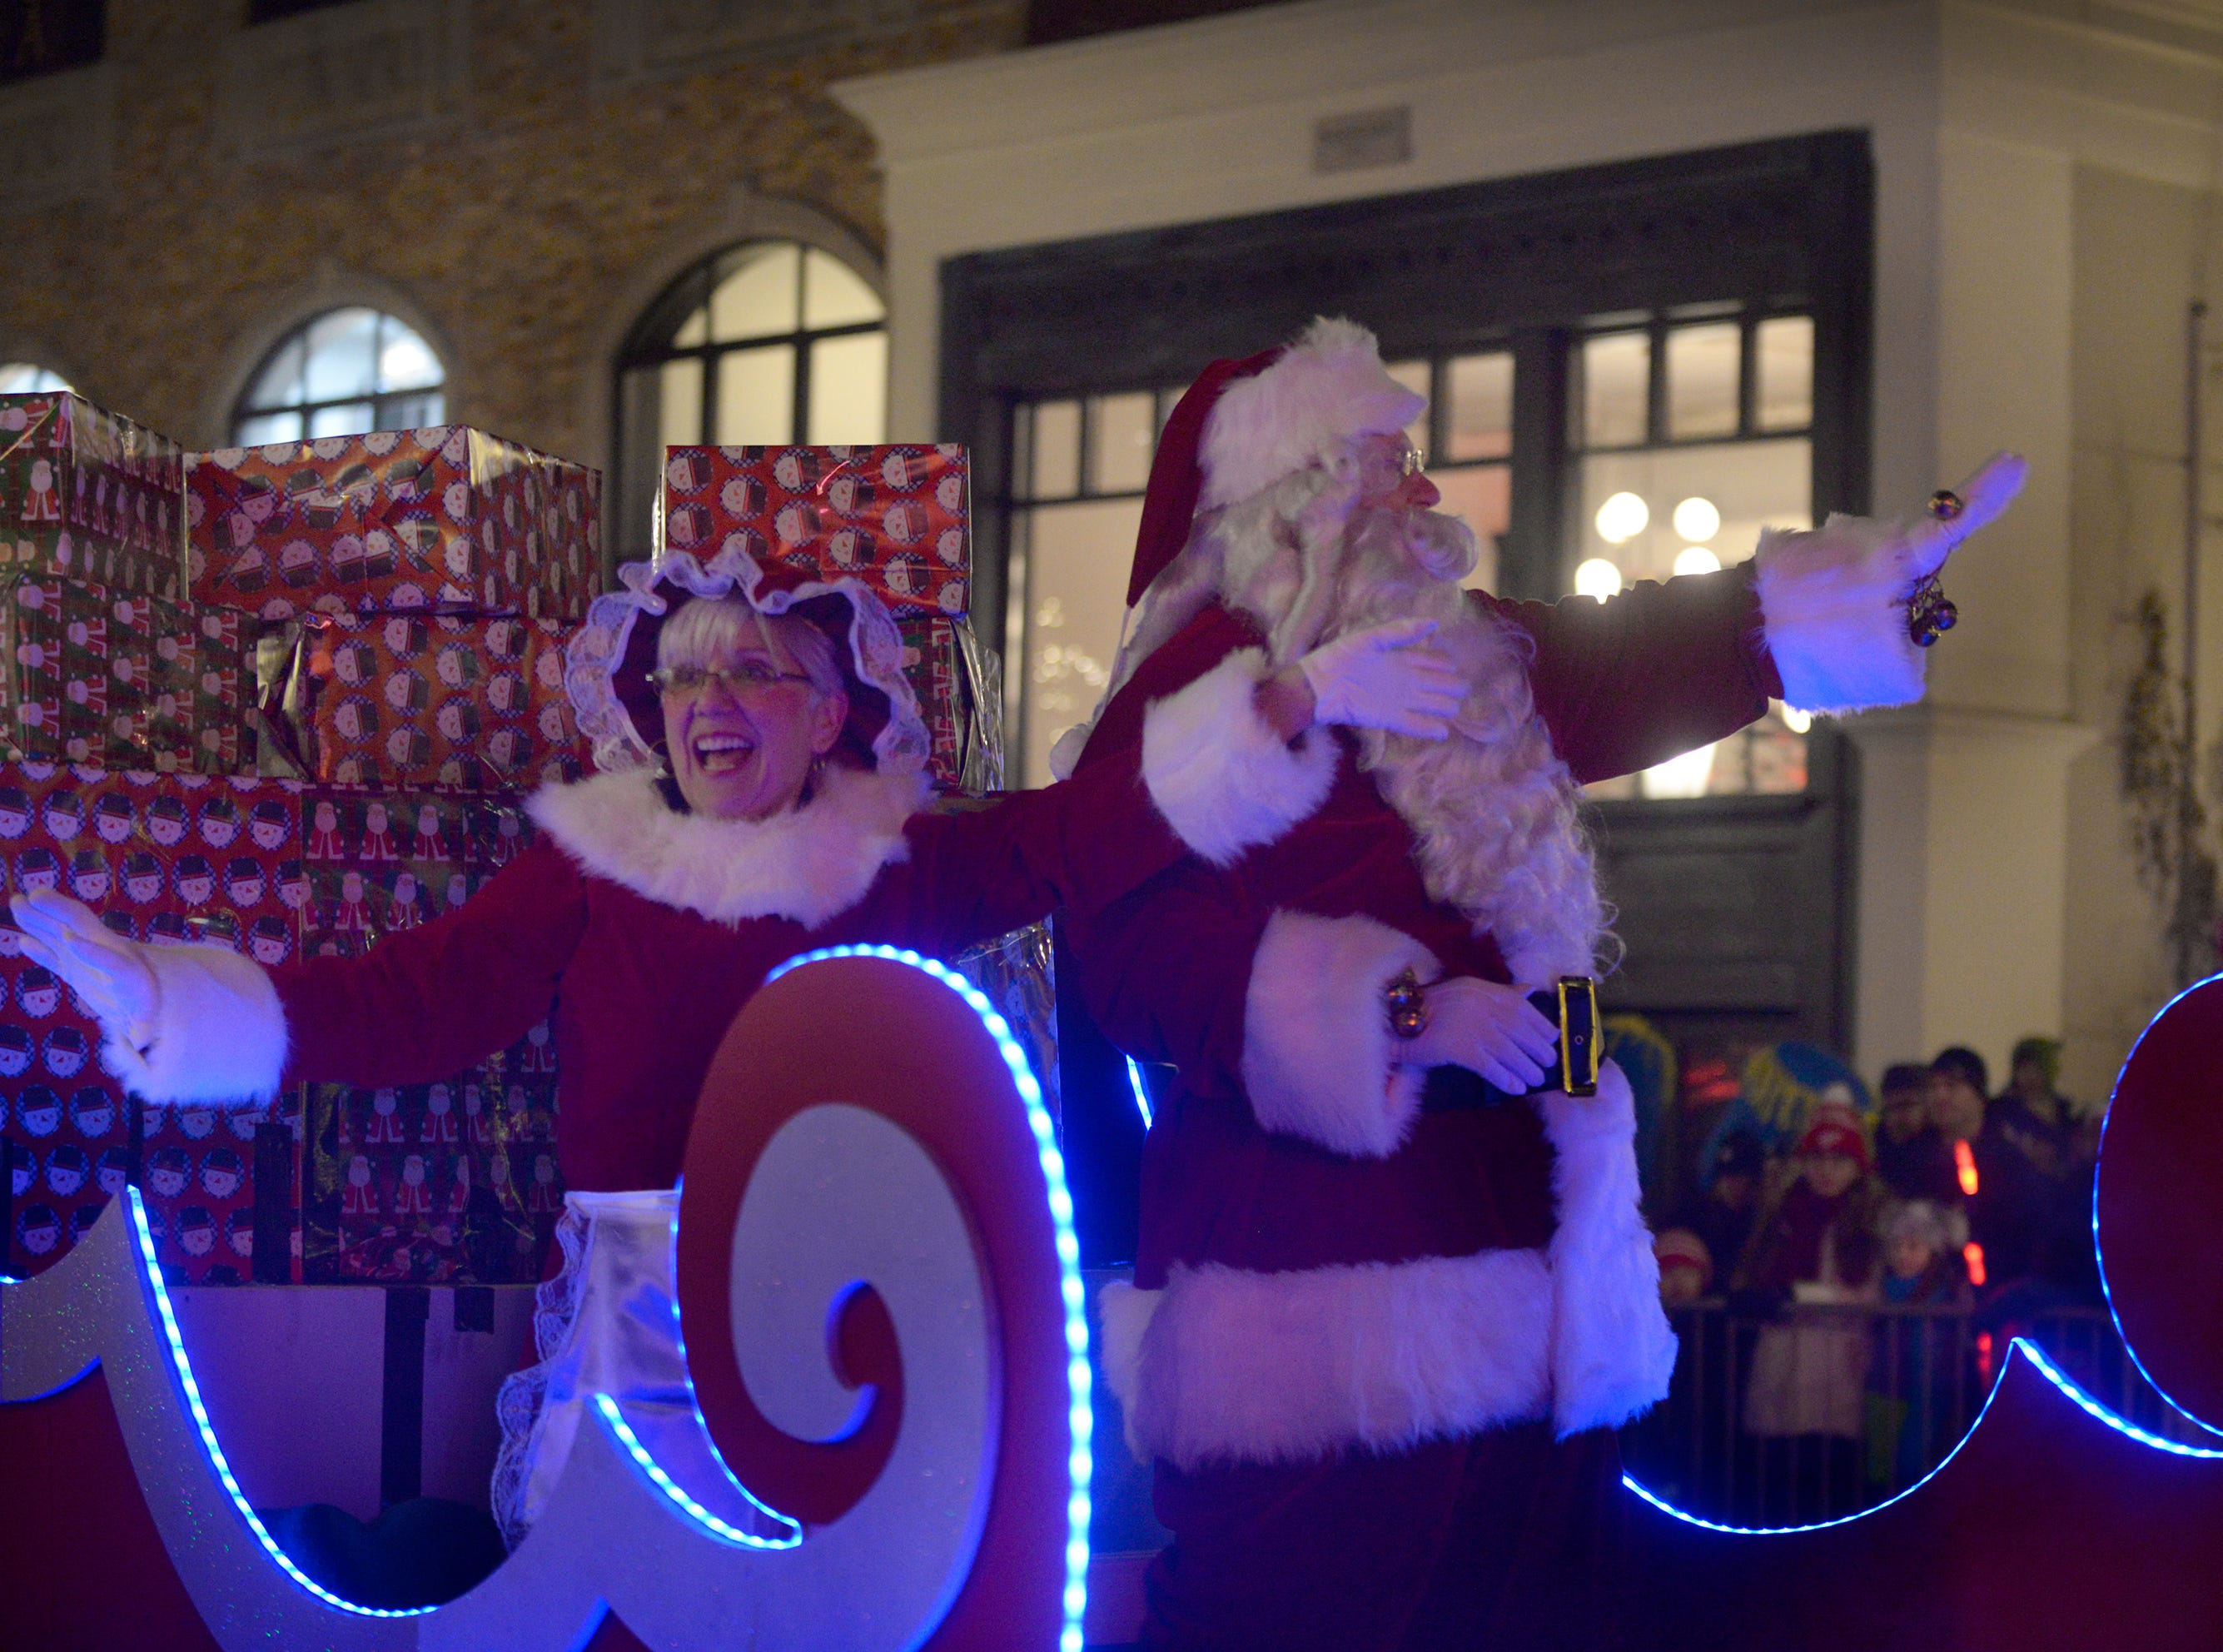 Mrs. Claus and Santa arrive on main Street during the Holiday Lighted Parade in downtown Northville, Nov. 16, 2018.